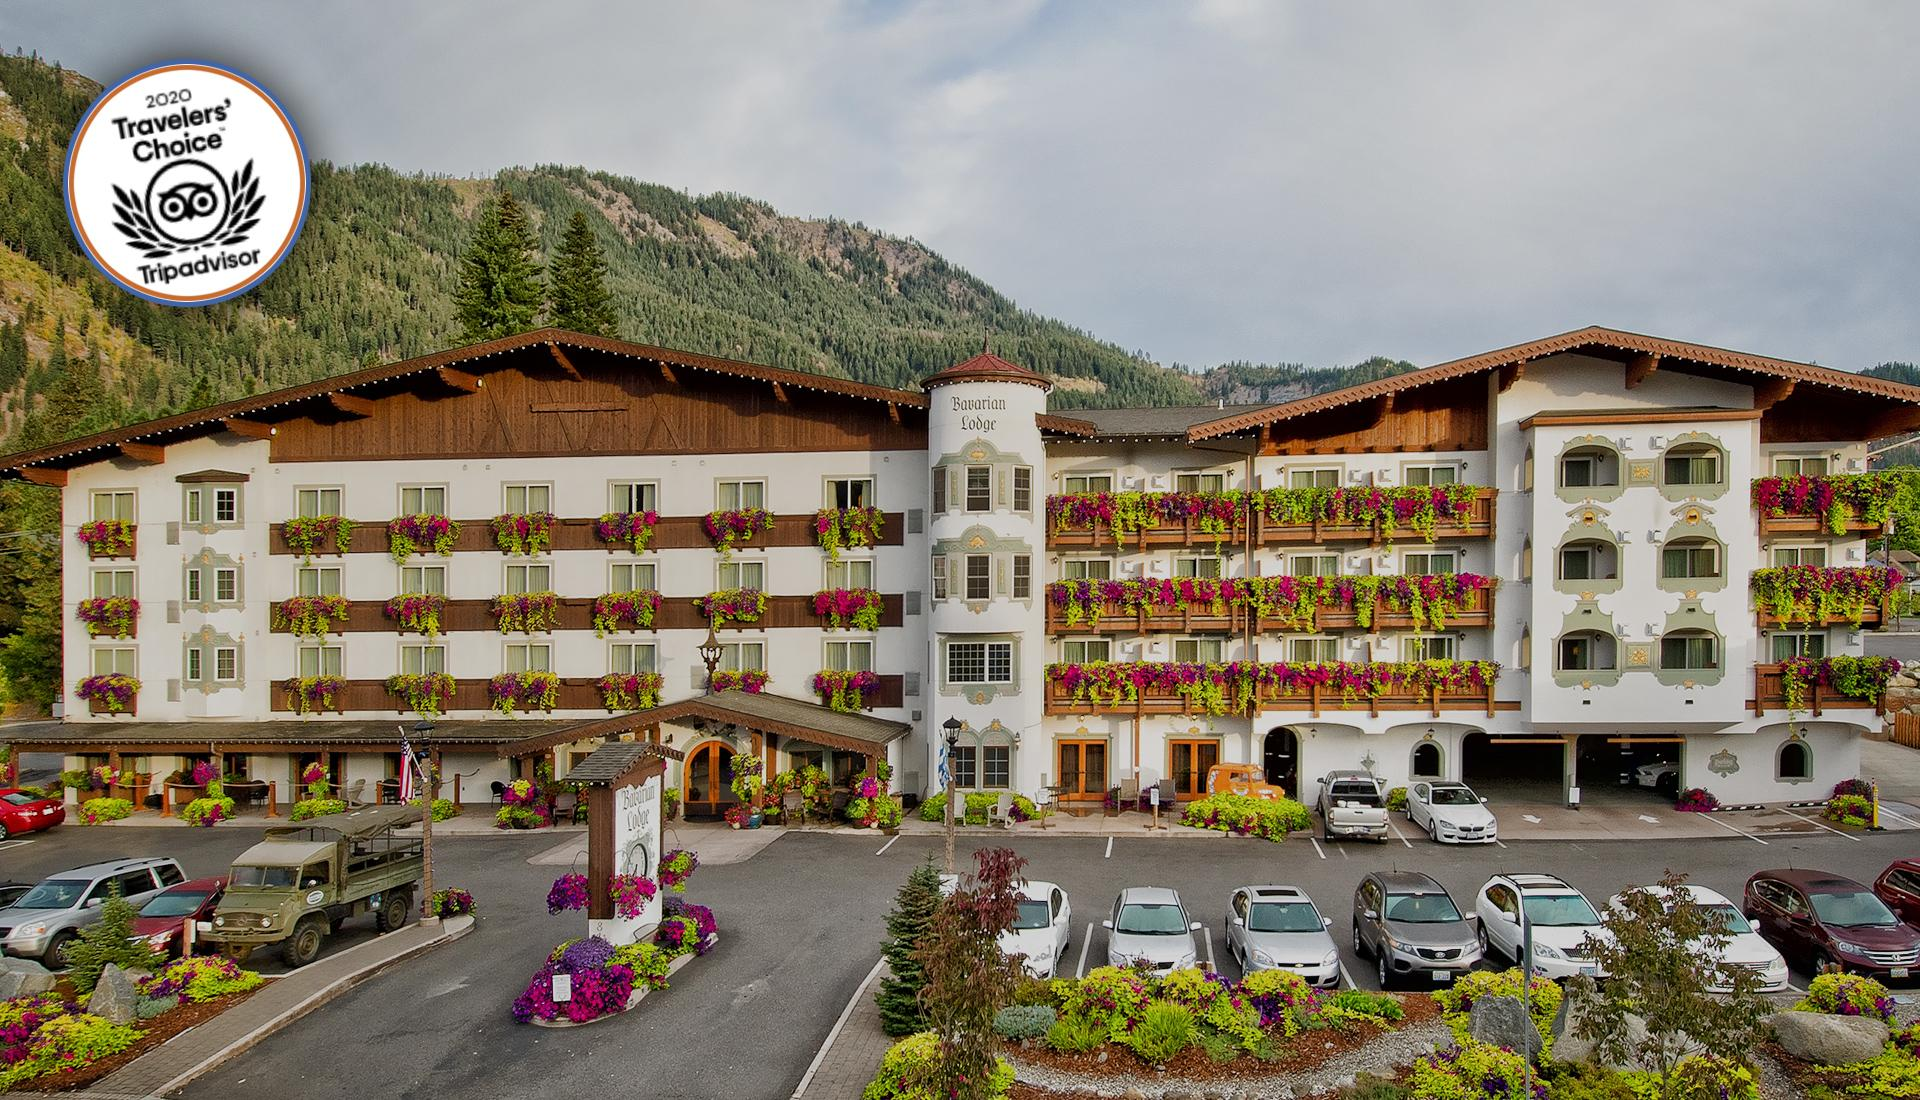 Bavarian Lodge Leavenworth Washington full building shot